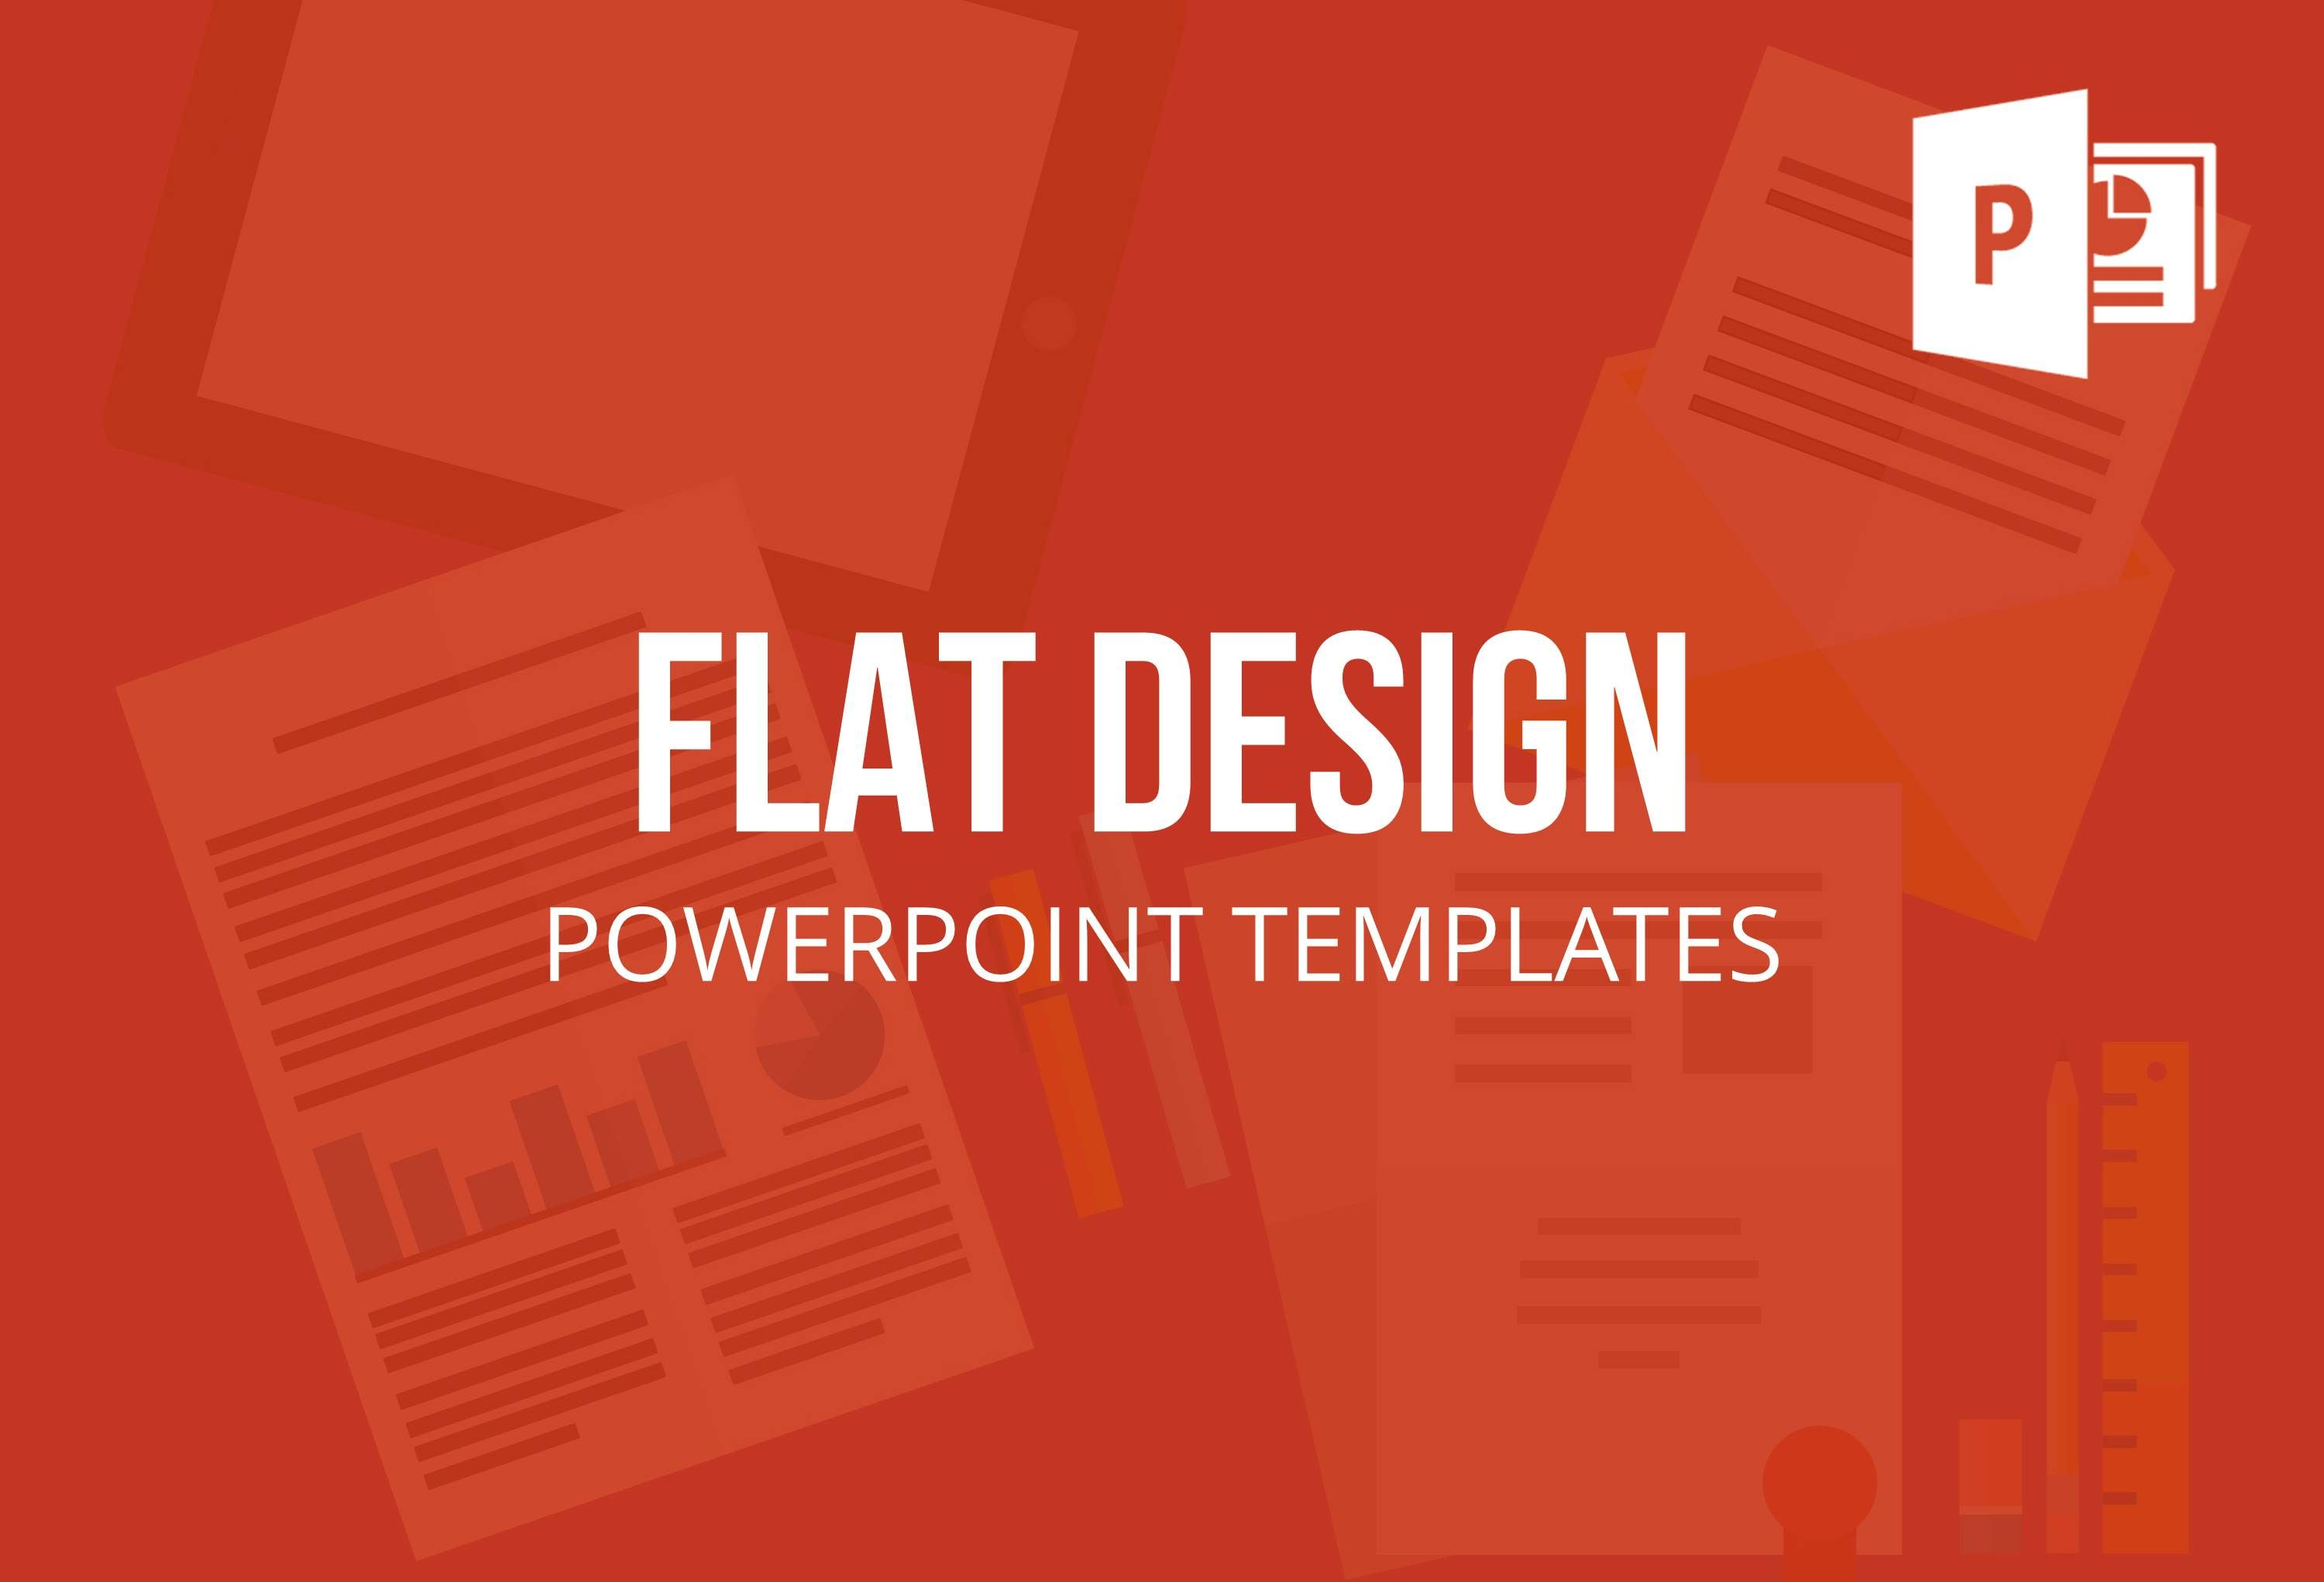 The brandnew flat design powerpoint templates correspond to the new the brandnew flat design powerpoint templates correspond to the new ms windows 8 tile style due to its constructive and trendy design this layout is the toneelgroepblik Choice Image